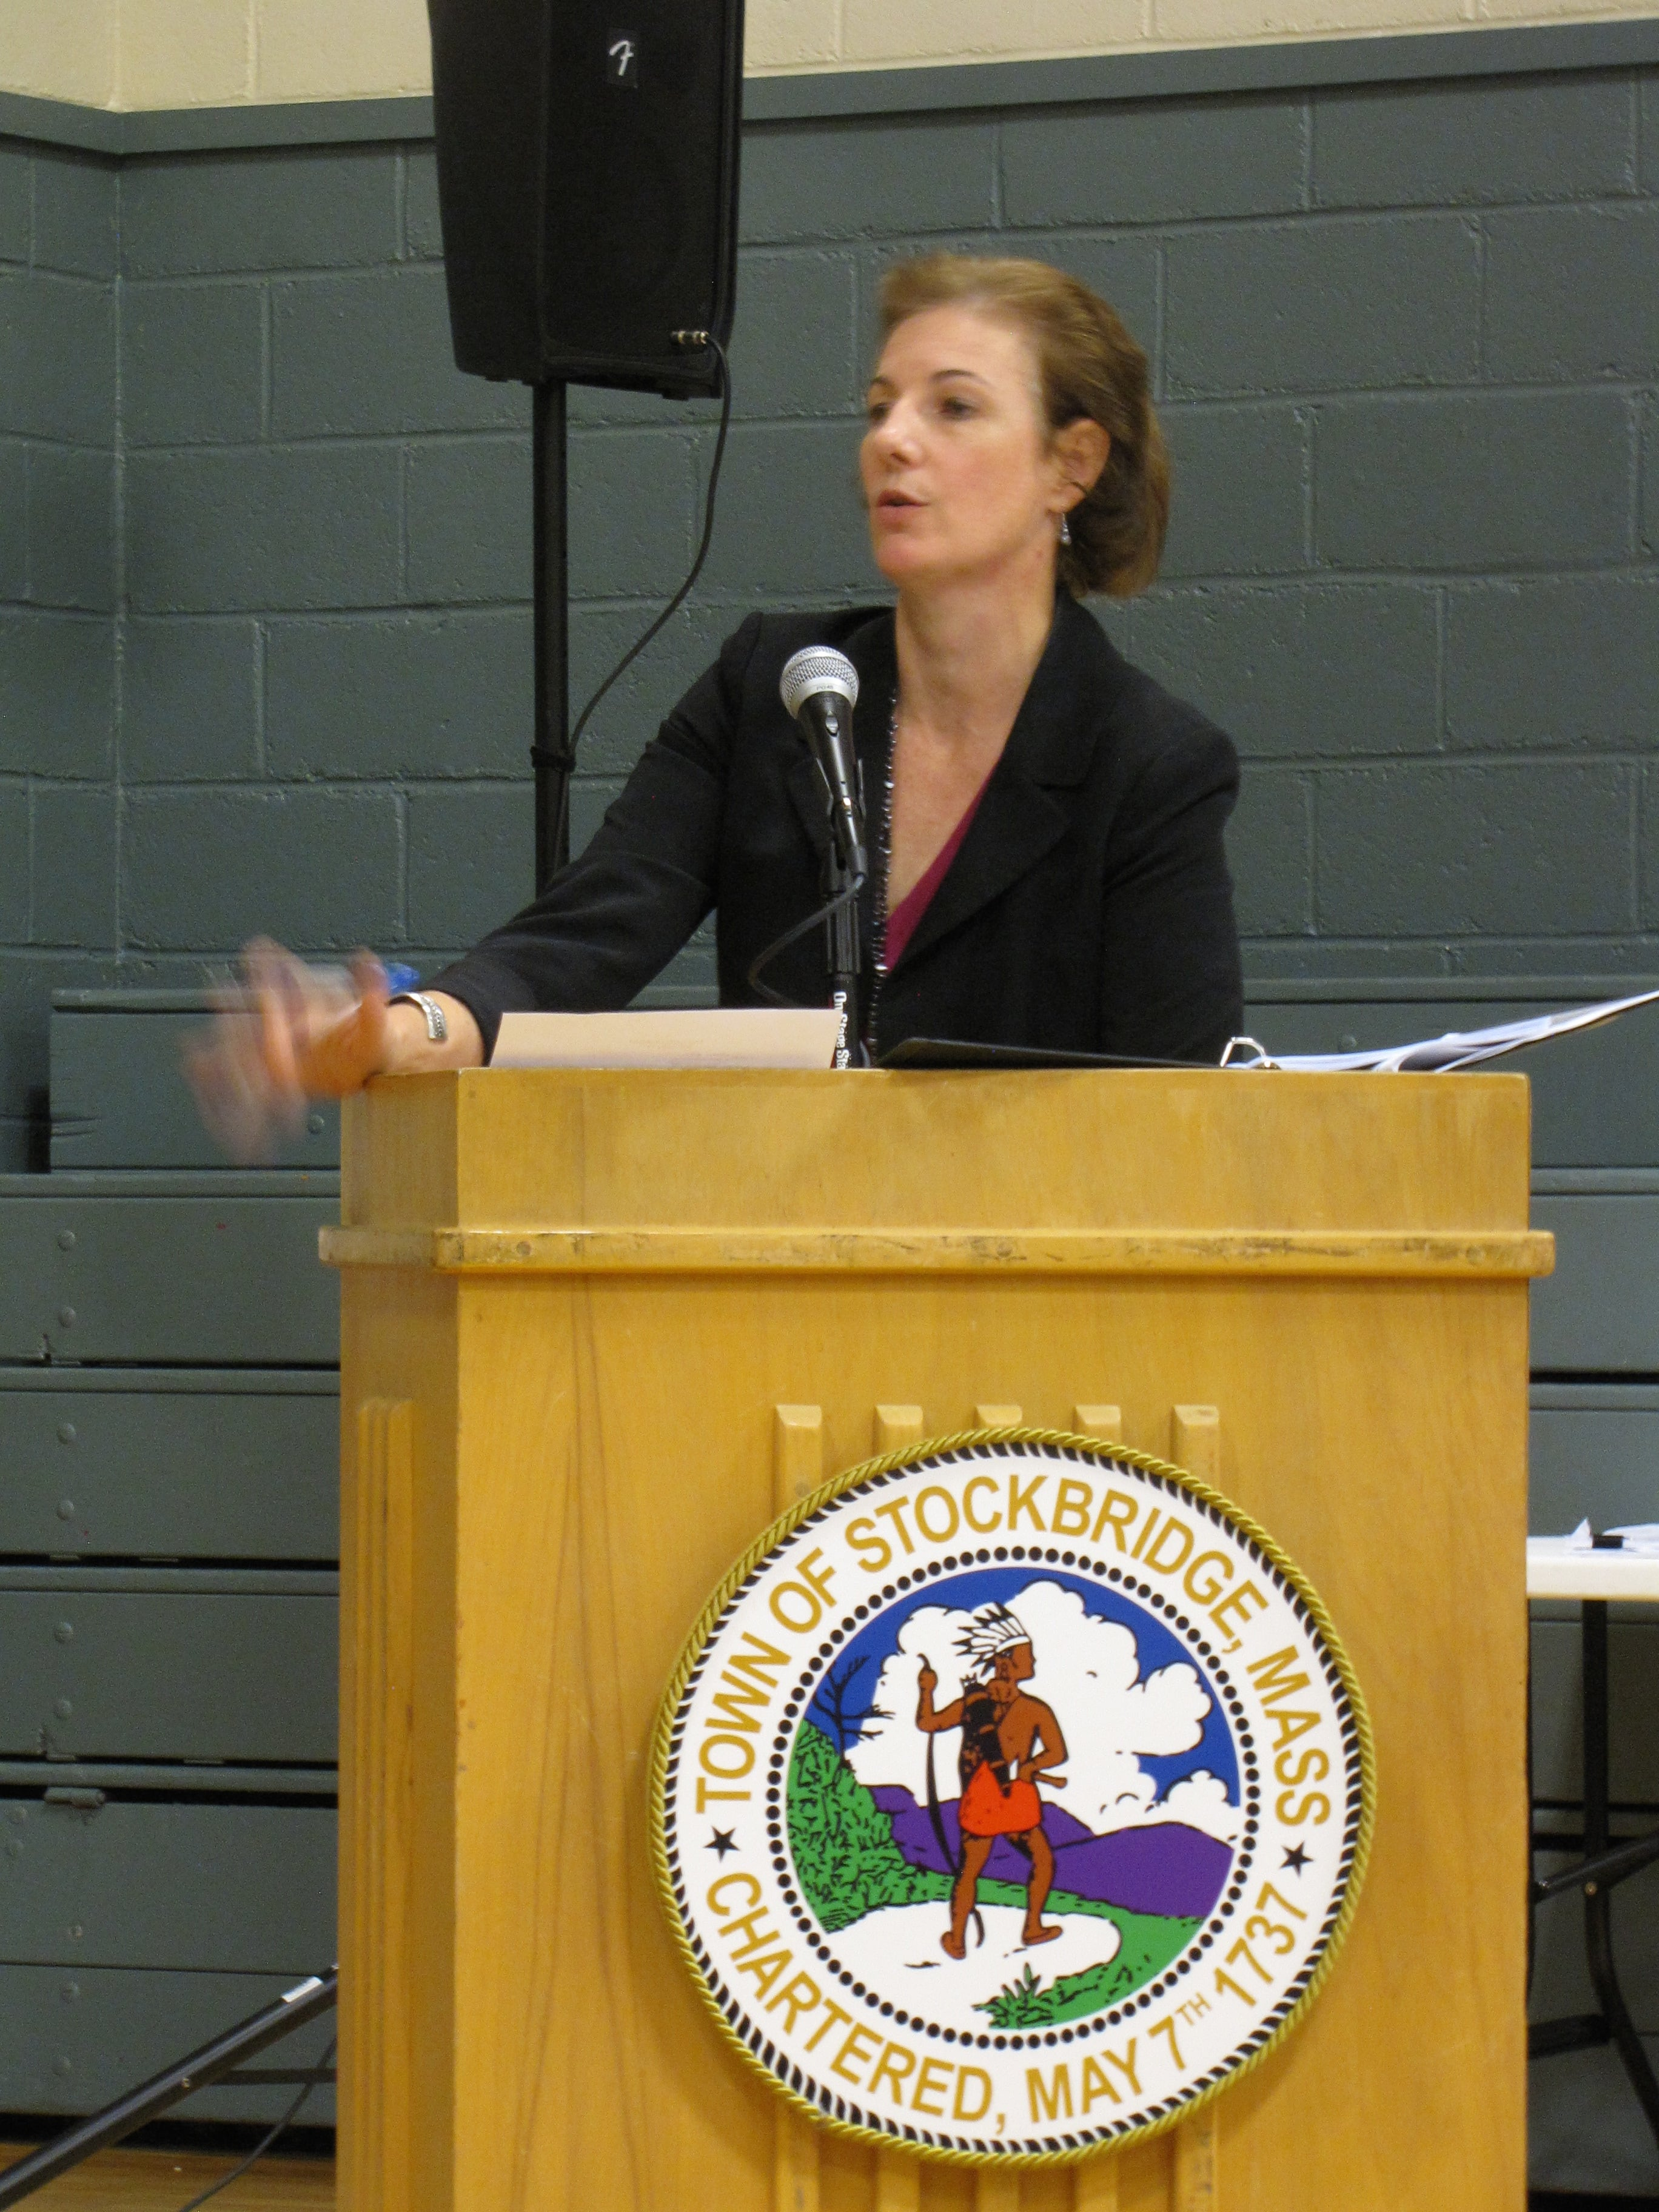 Attorney Alexandra Glover, requesting that Front Yard withdraw its application for a special permit.